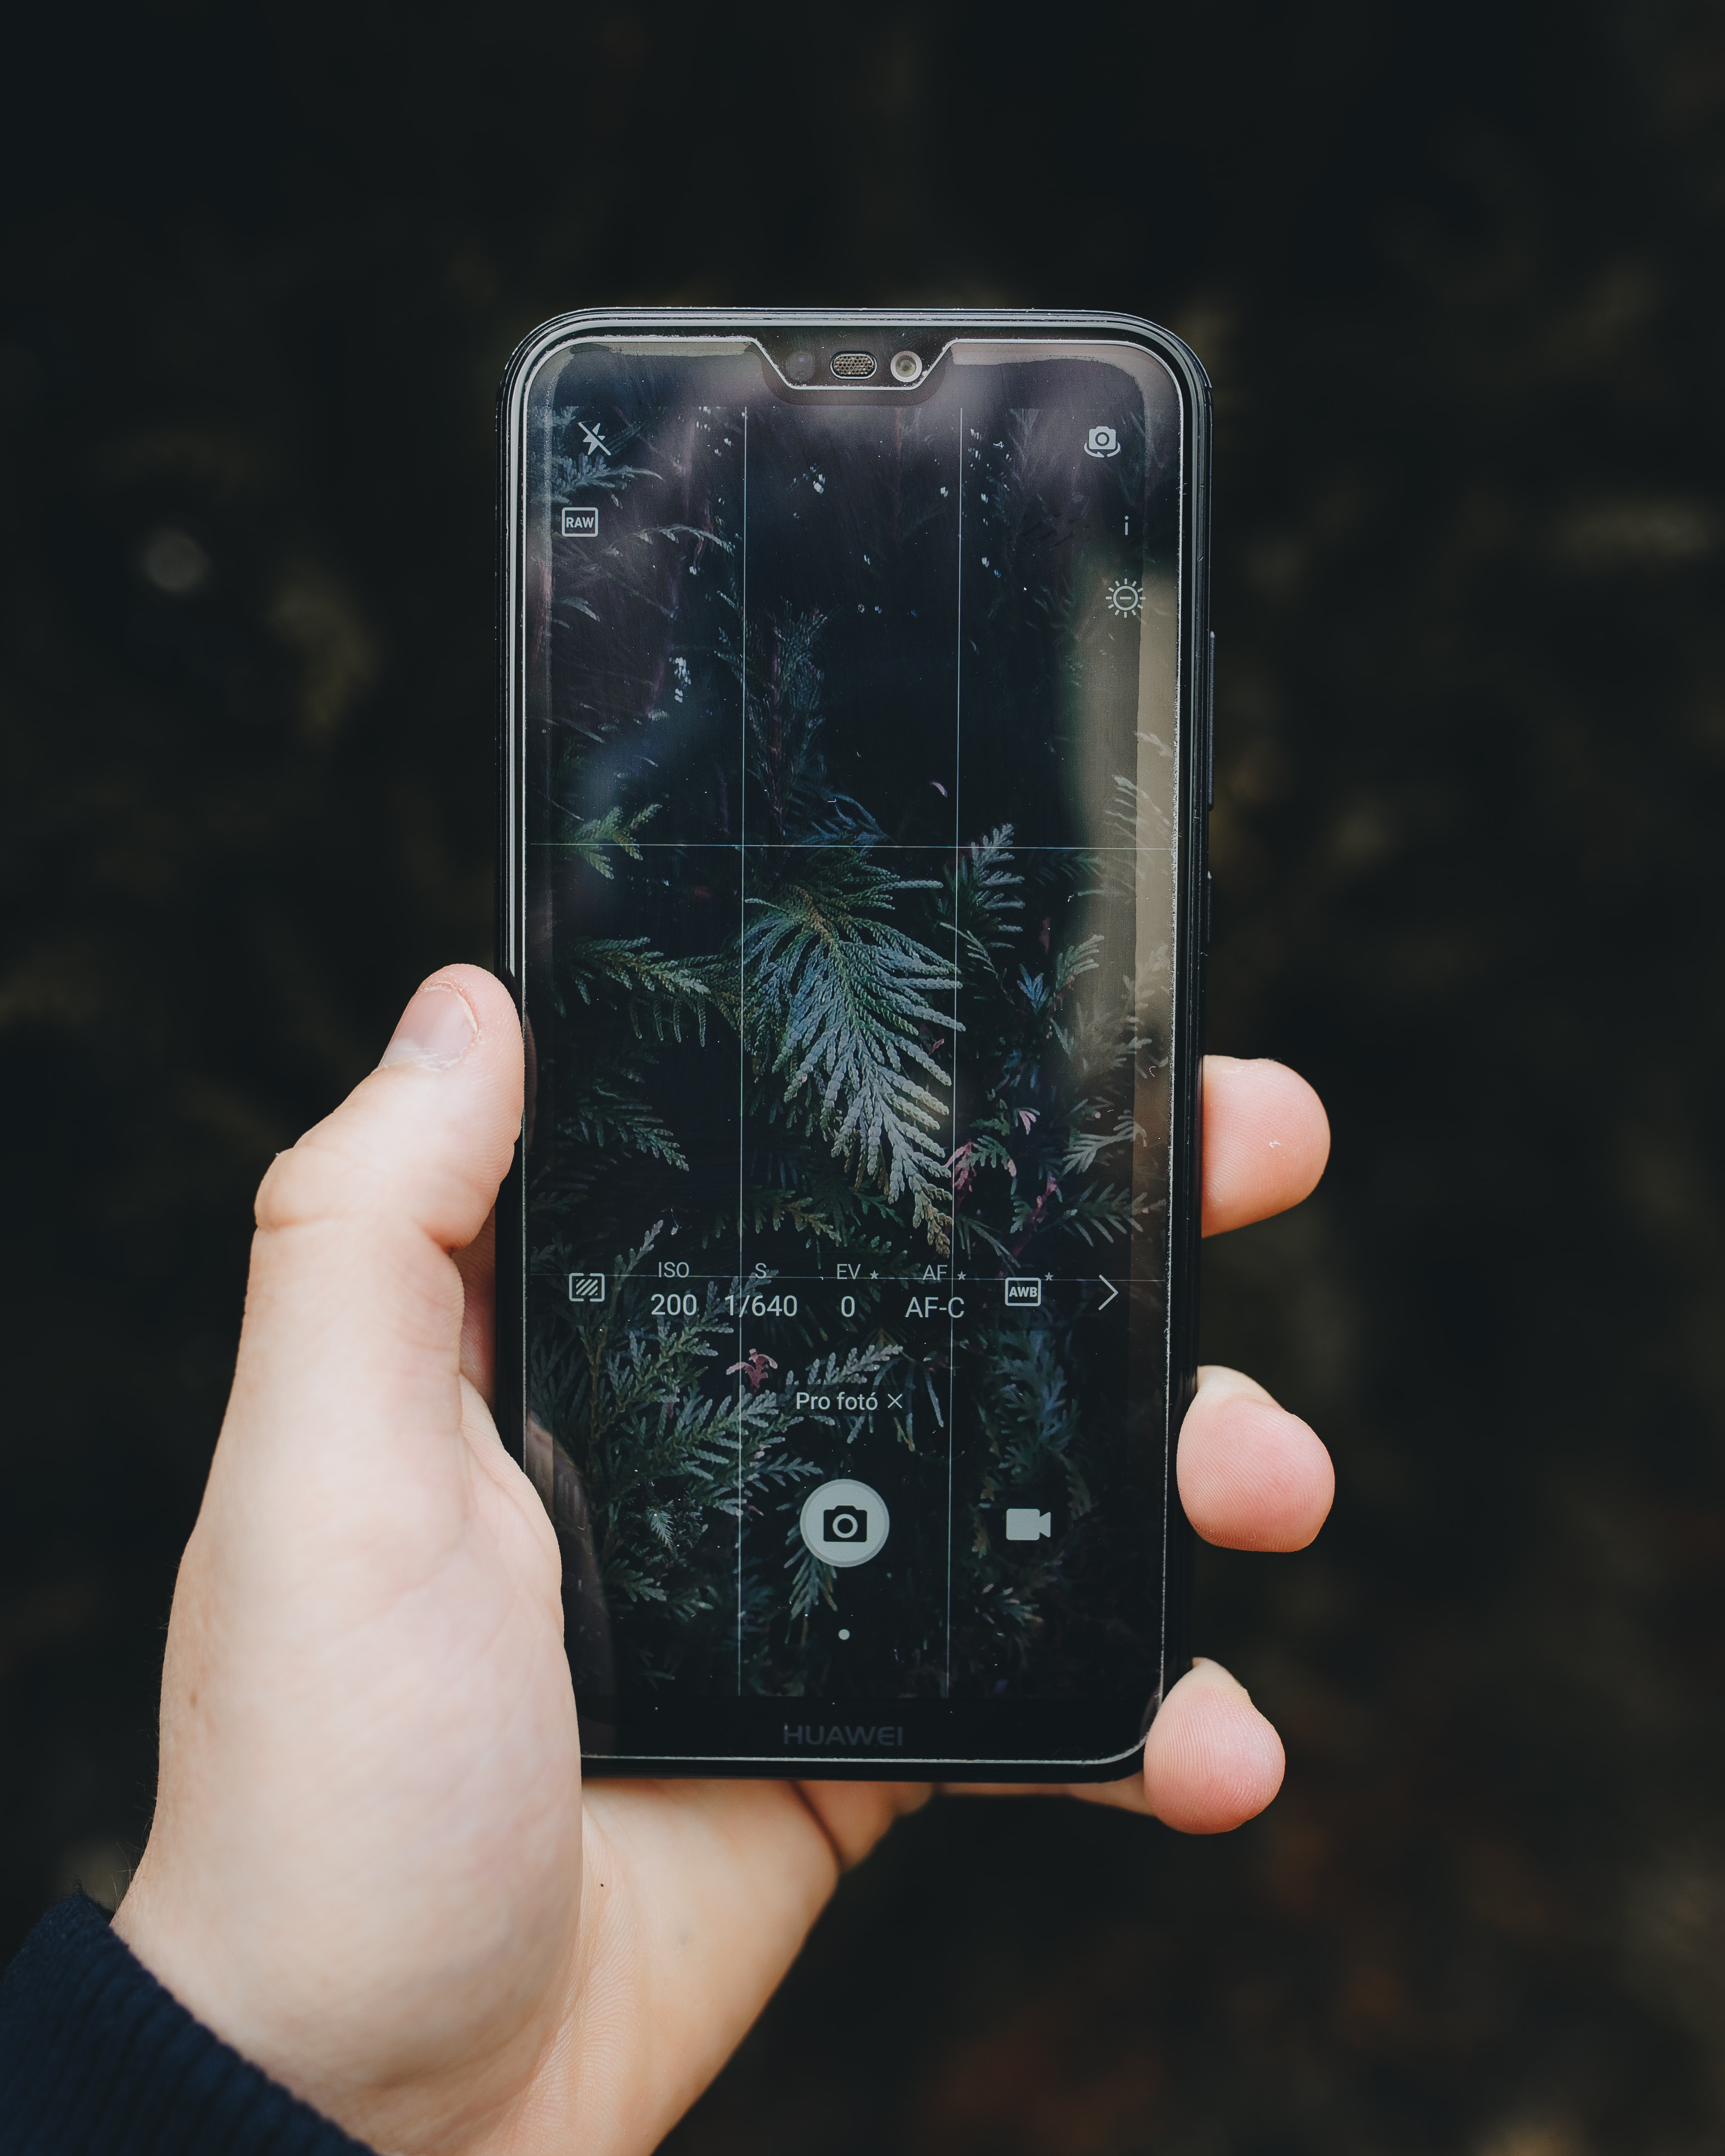 person holding iPhone about to take photo of plants